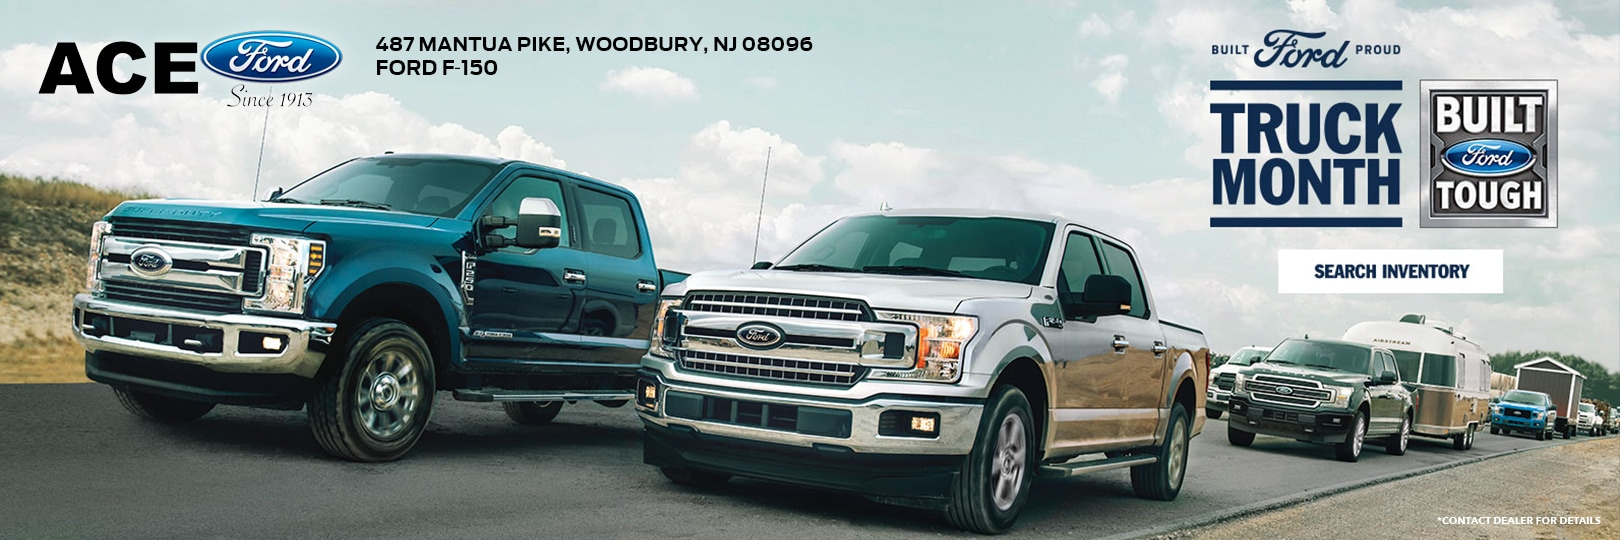 Ford Dealers Nj >> My Local Ford Dealership Ace Ford Ford Dealer In Nj